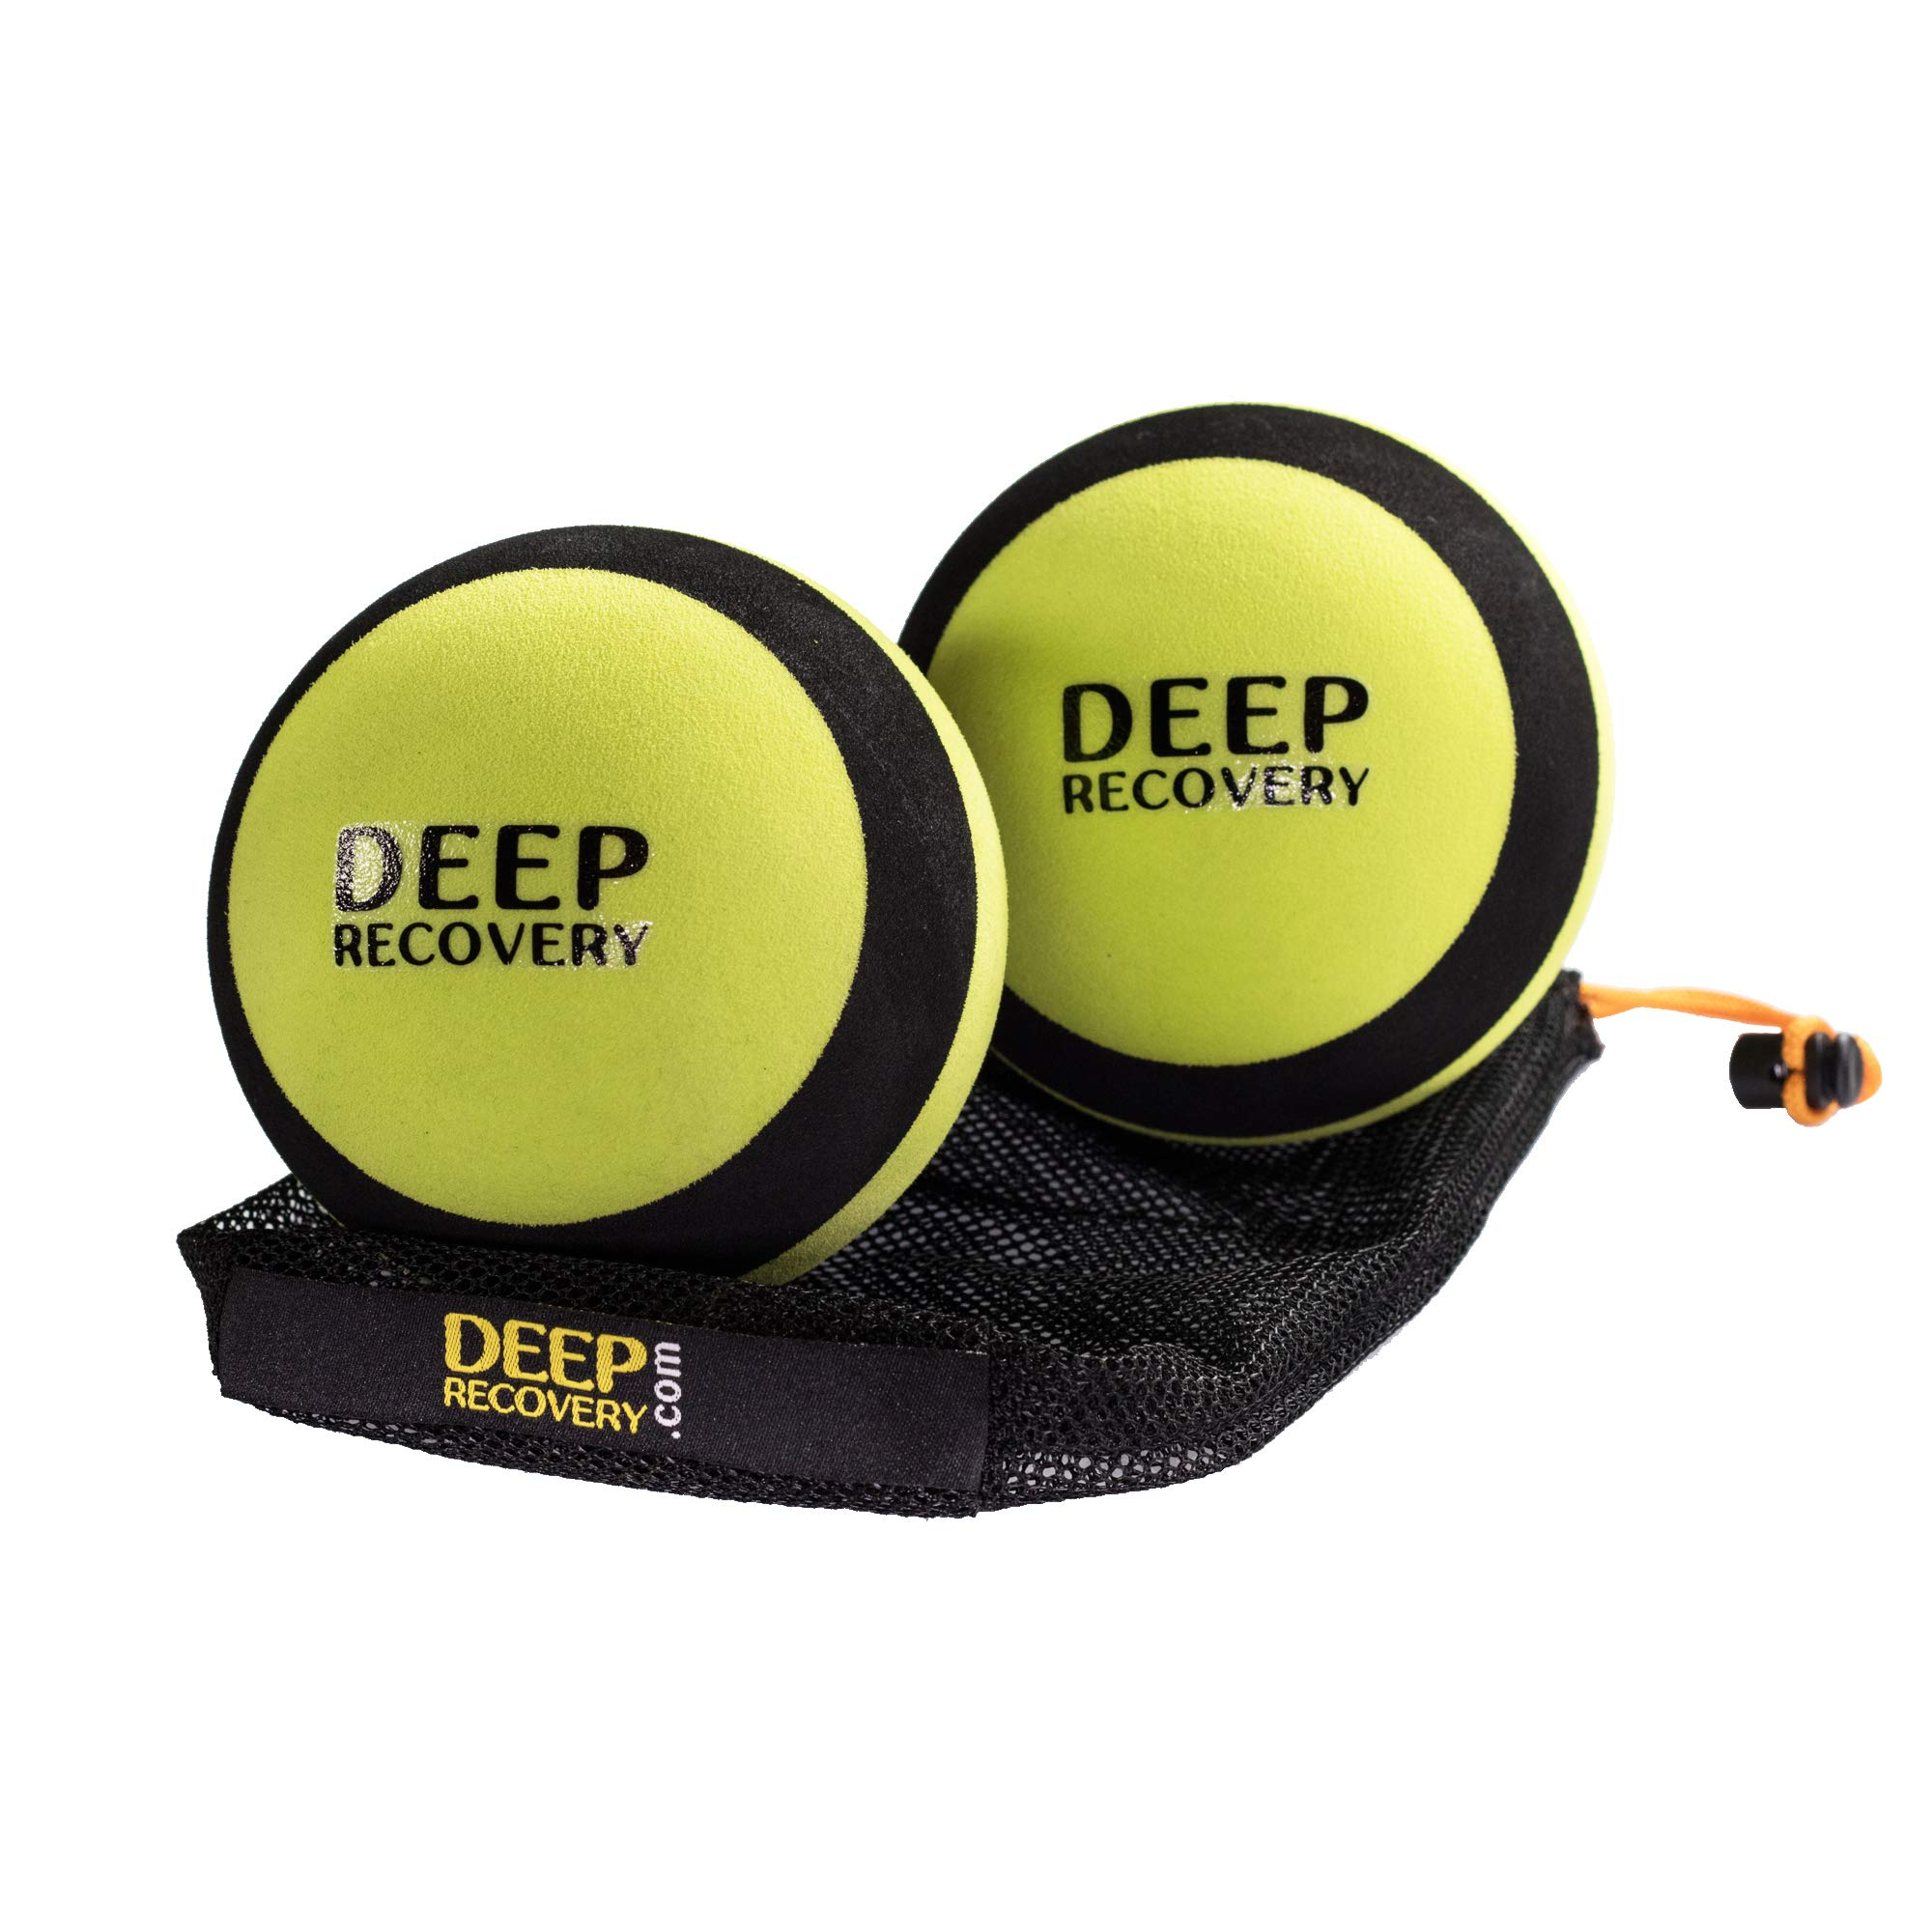 Deep Recovery 4 inch Diameter Massage Ball Set for Lower Back and Large Muscle Groups